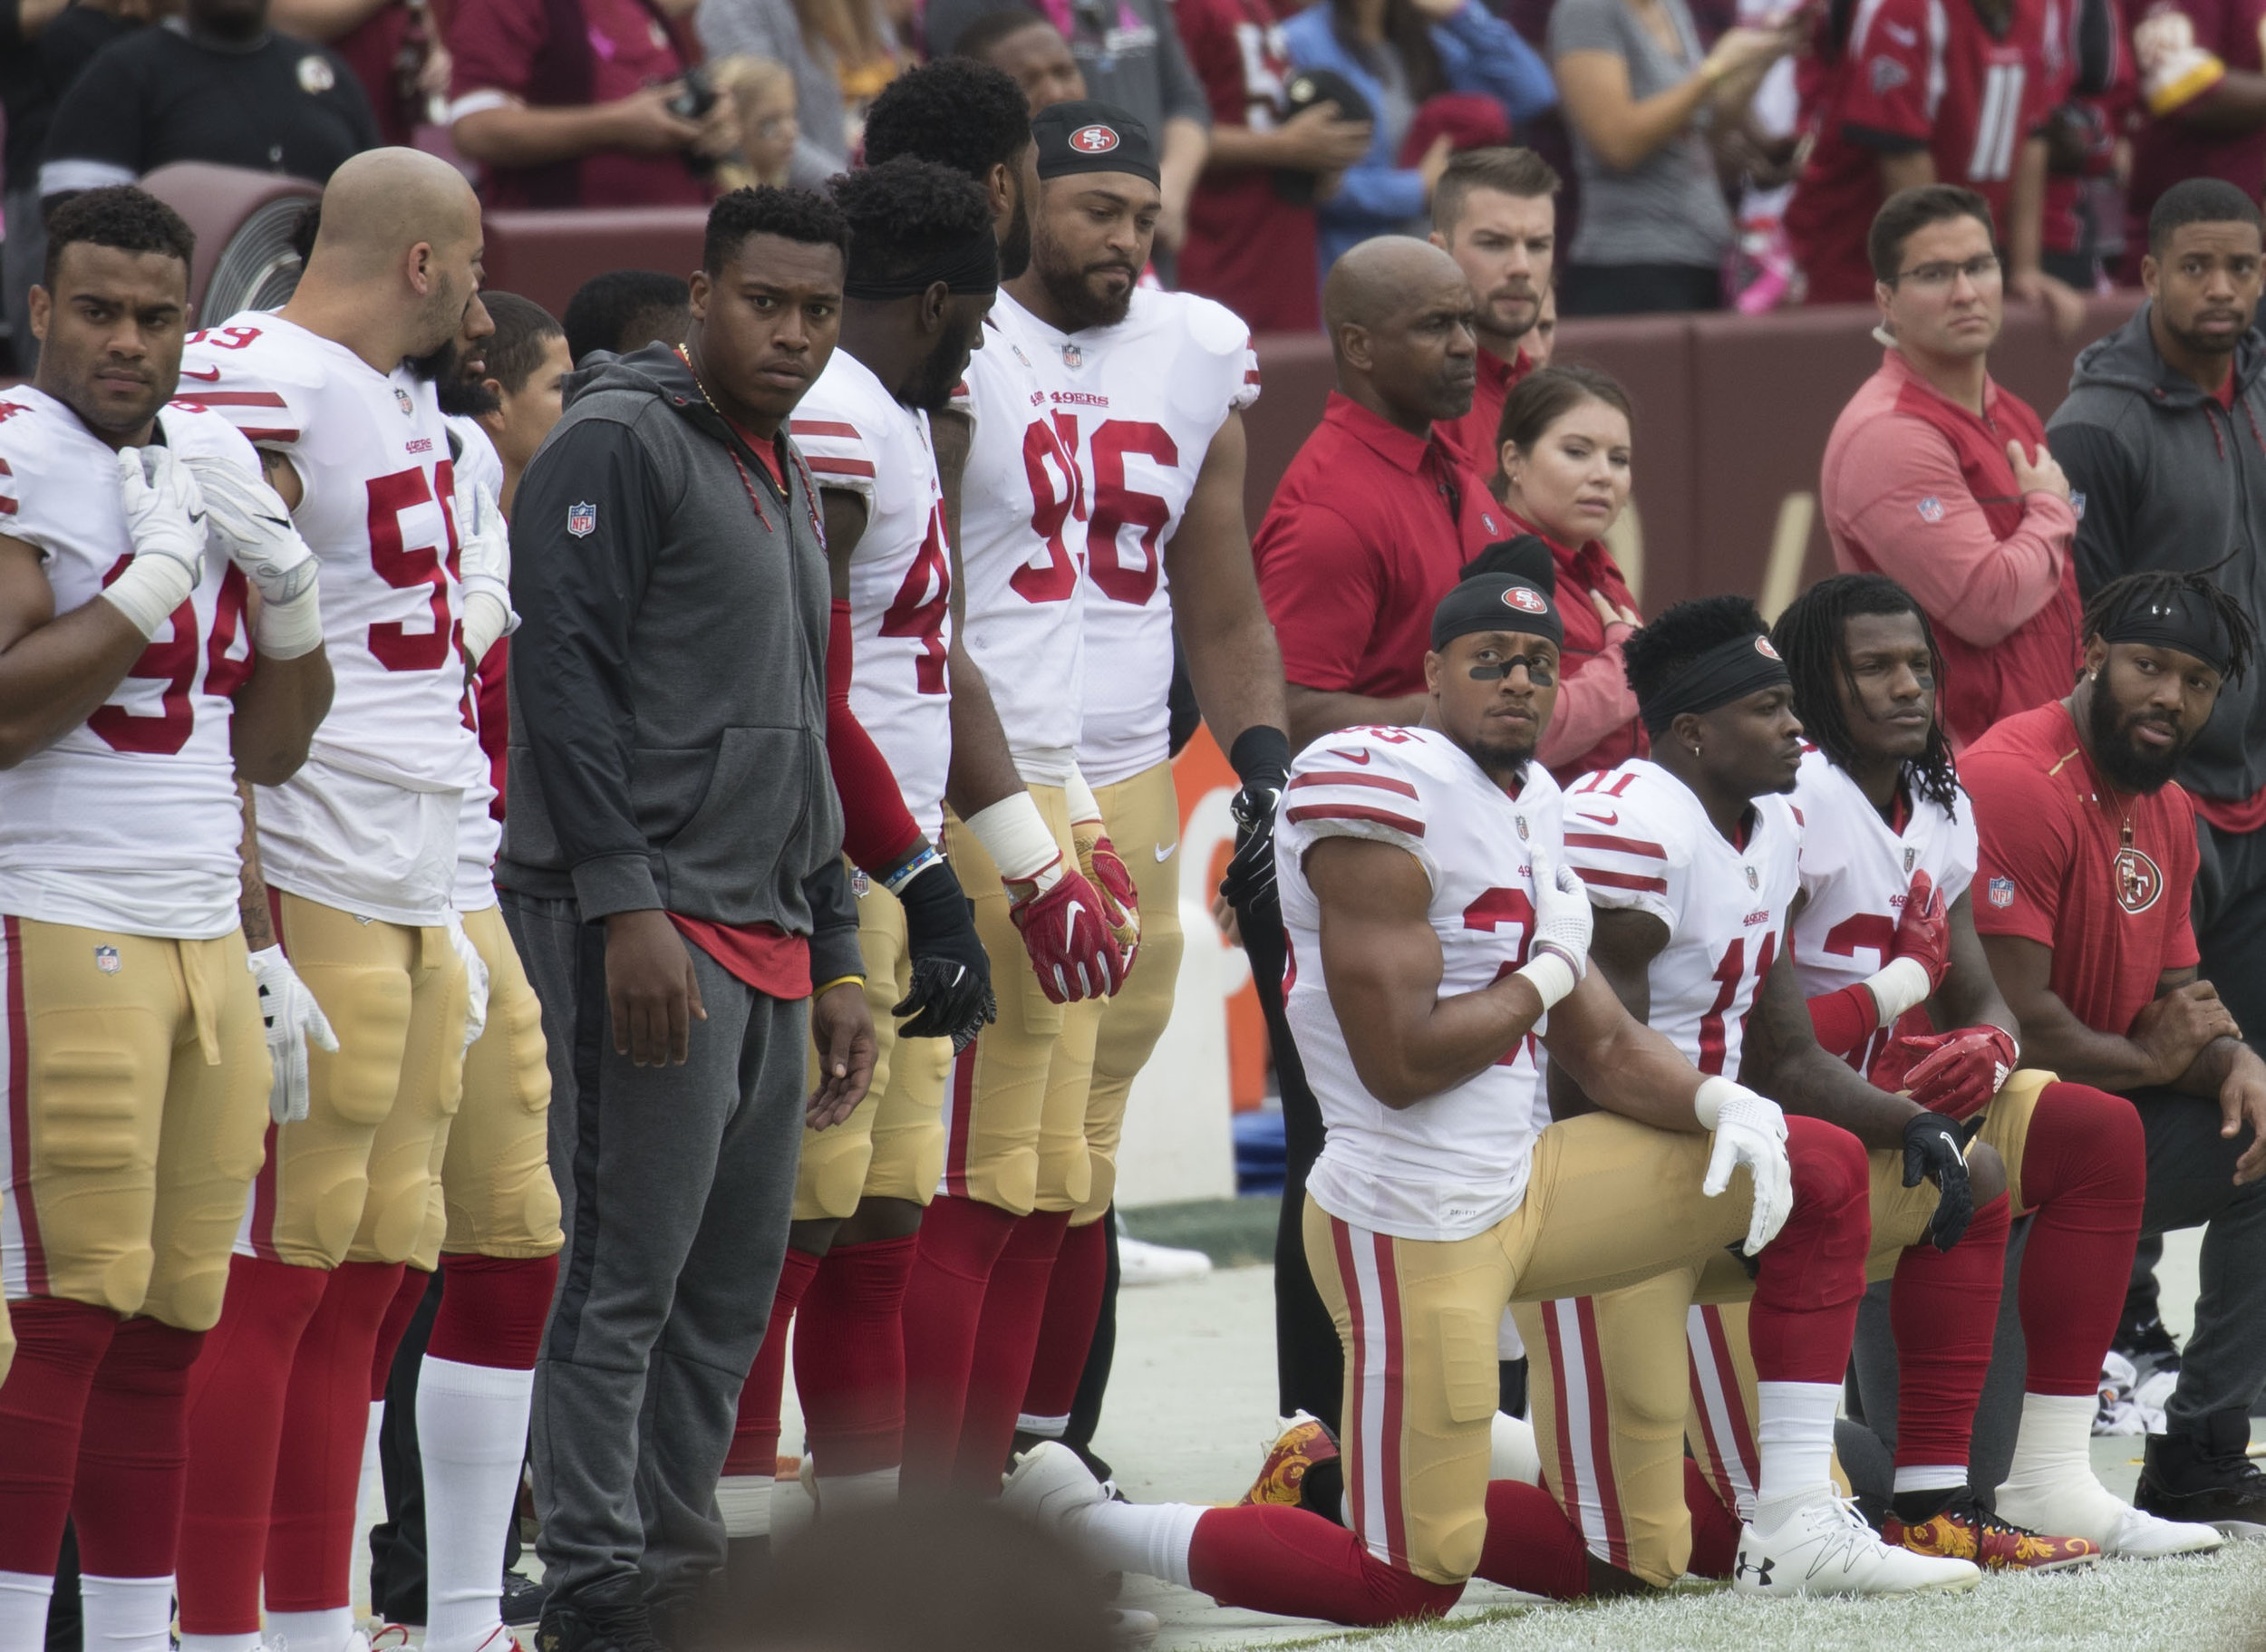 """Some members of the San Francisco 49ers kneeling during """"The Star-Spangled Banner""""before a game against the Washington Redskins at FedEx Field in Landover, Maryland on Oct. 15, 2017. Photograph by Keith Allison."""